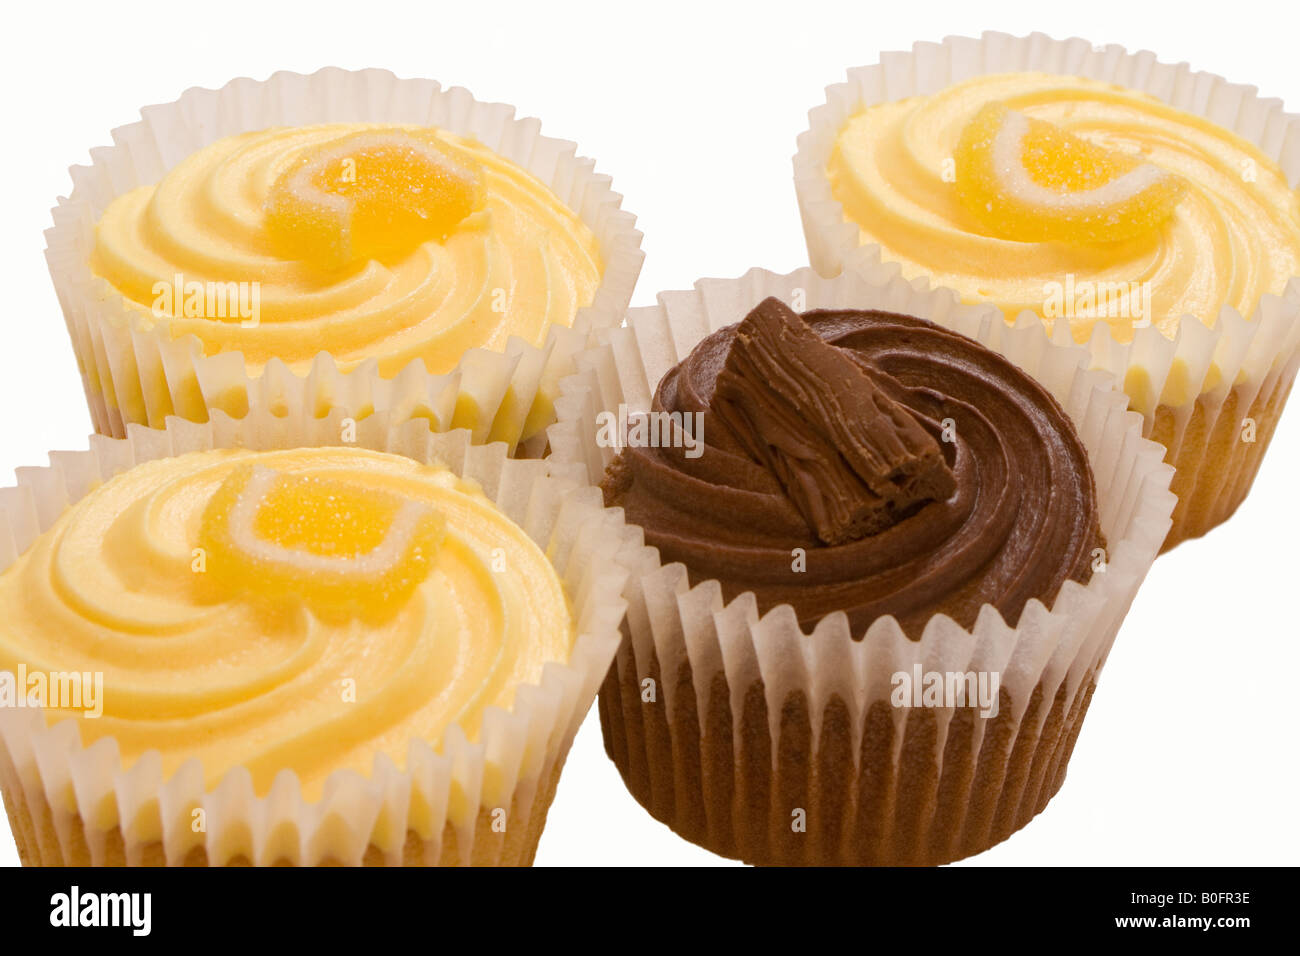 Lemon Buns With Butter Icing And Sugared Lemon And A Chocolate Bun Topped With A Flake